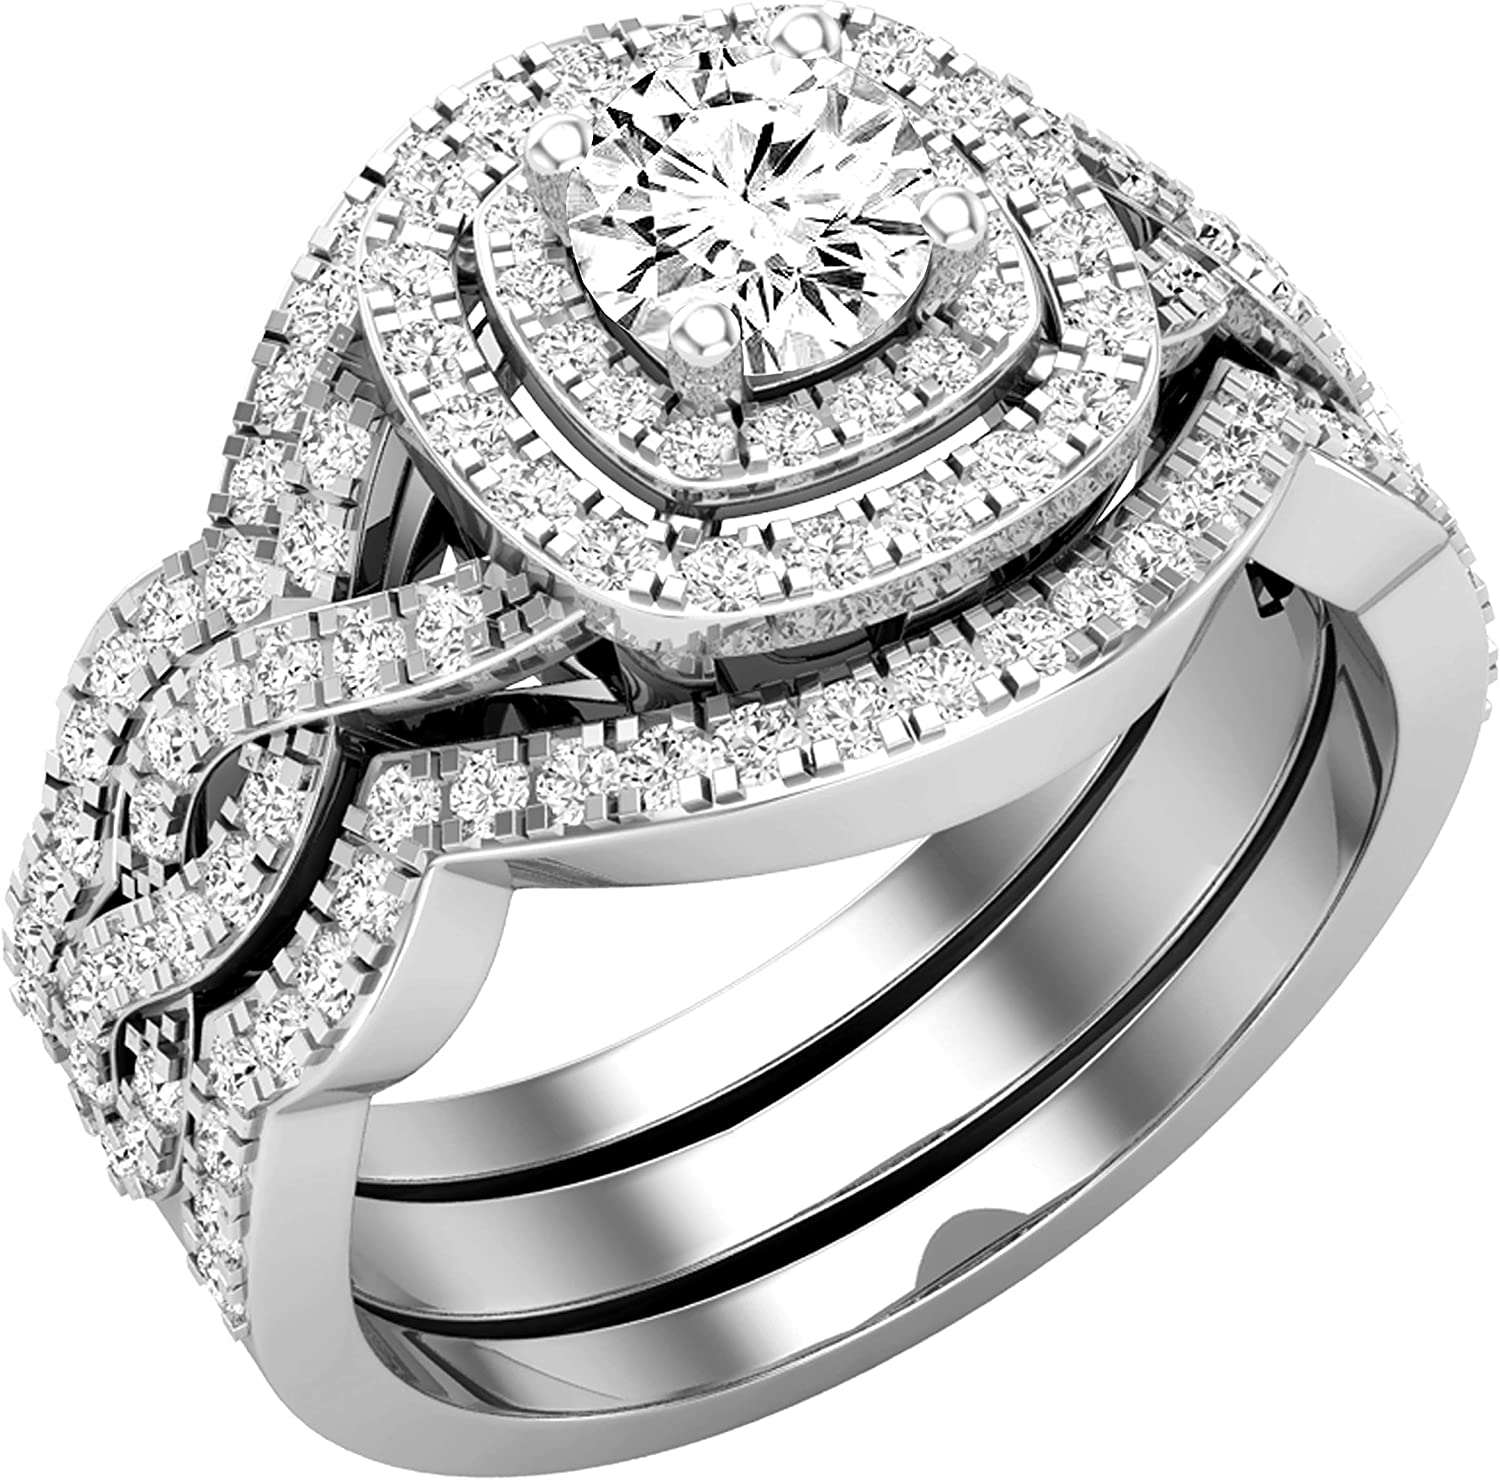 Dazzlingrock Collection 1.25 Carat ctw Round 70% OFF Outlet Long-awaited DGLA Wh Certified